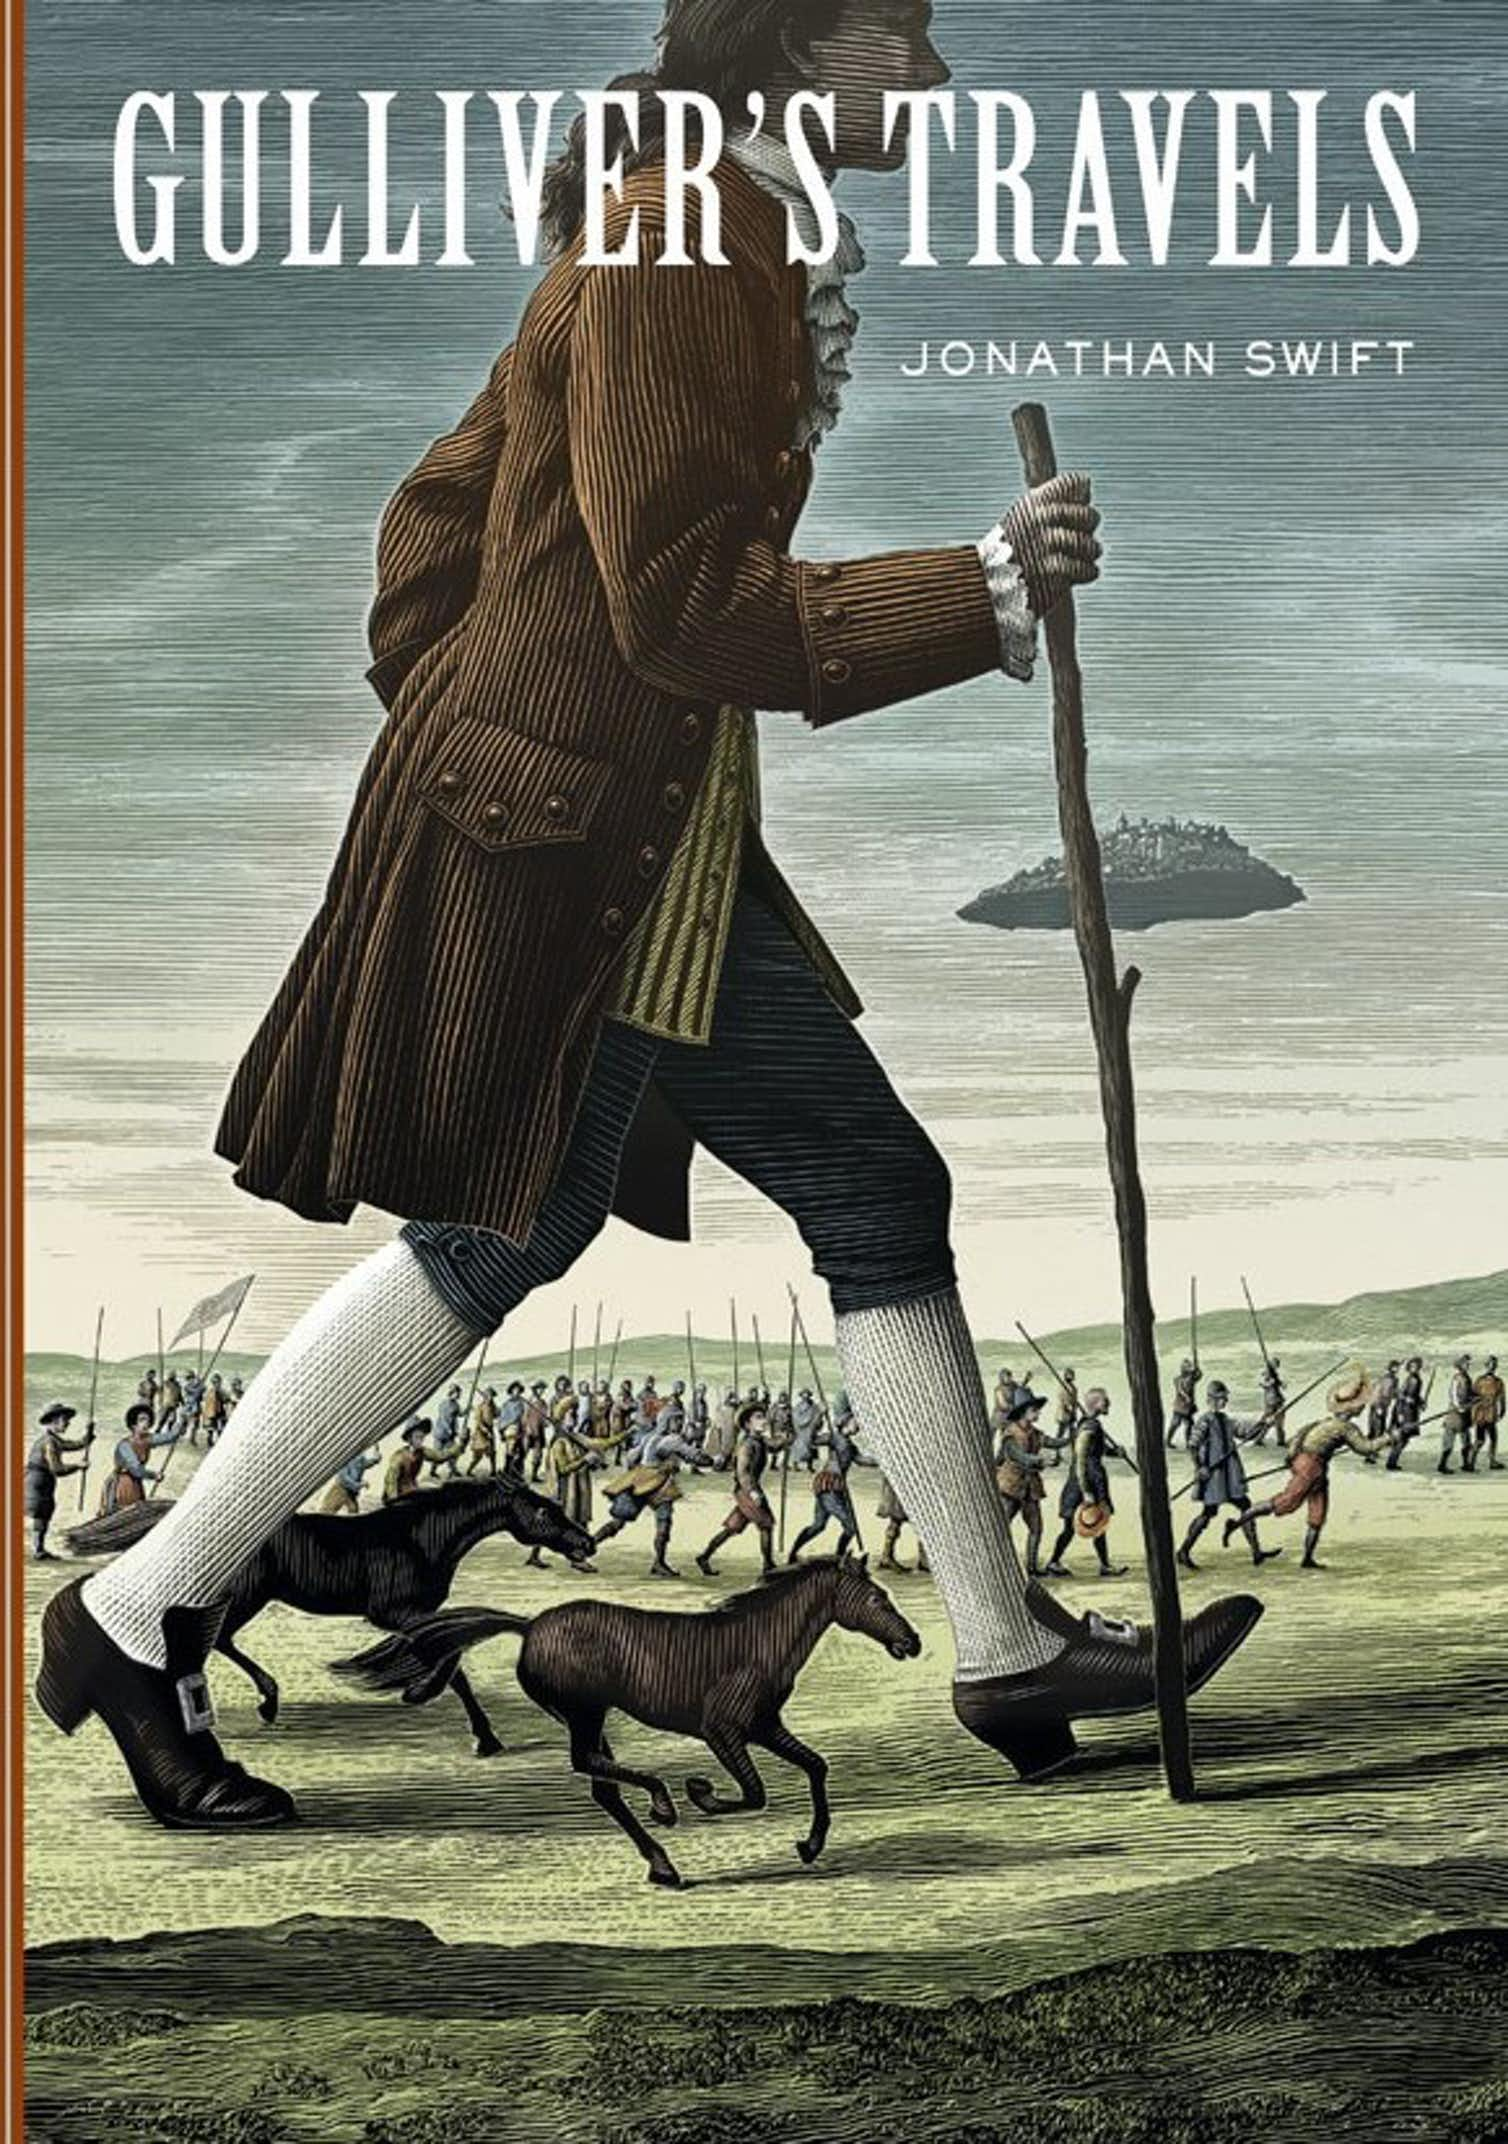 Jonathan Swift's Gulliver's Travels as republished by Sterling Publishing (Illustration by Scott McKowen). Sterling Classics